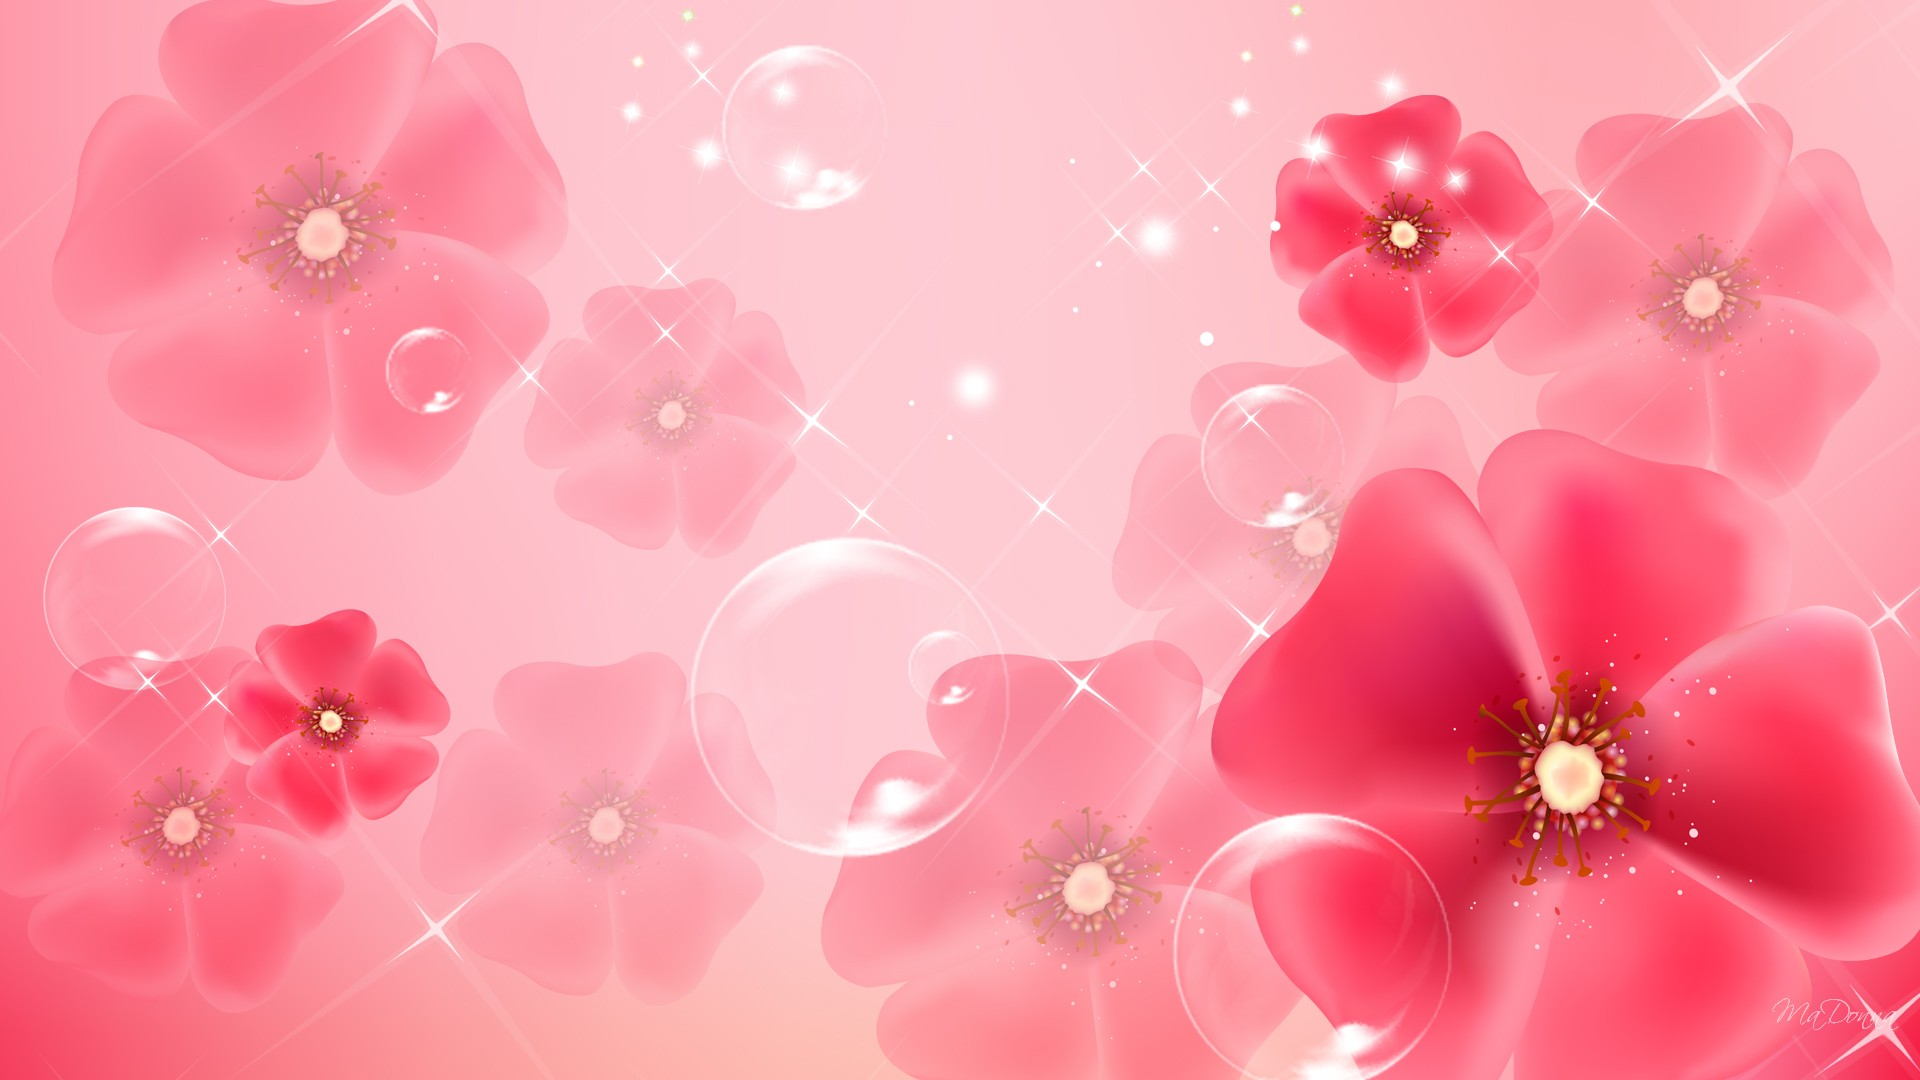 beautiful girly wallpapers